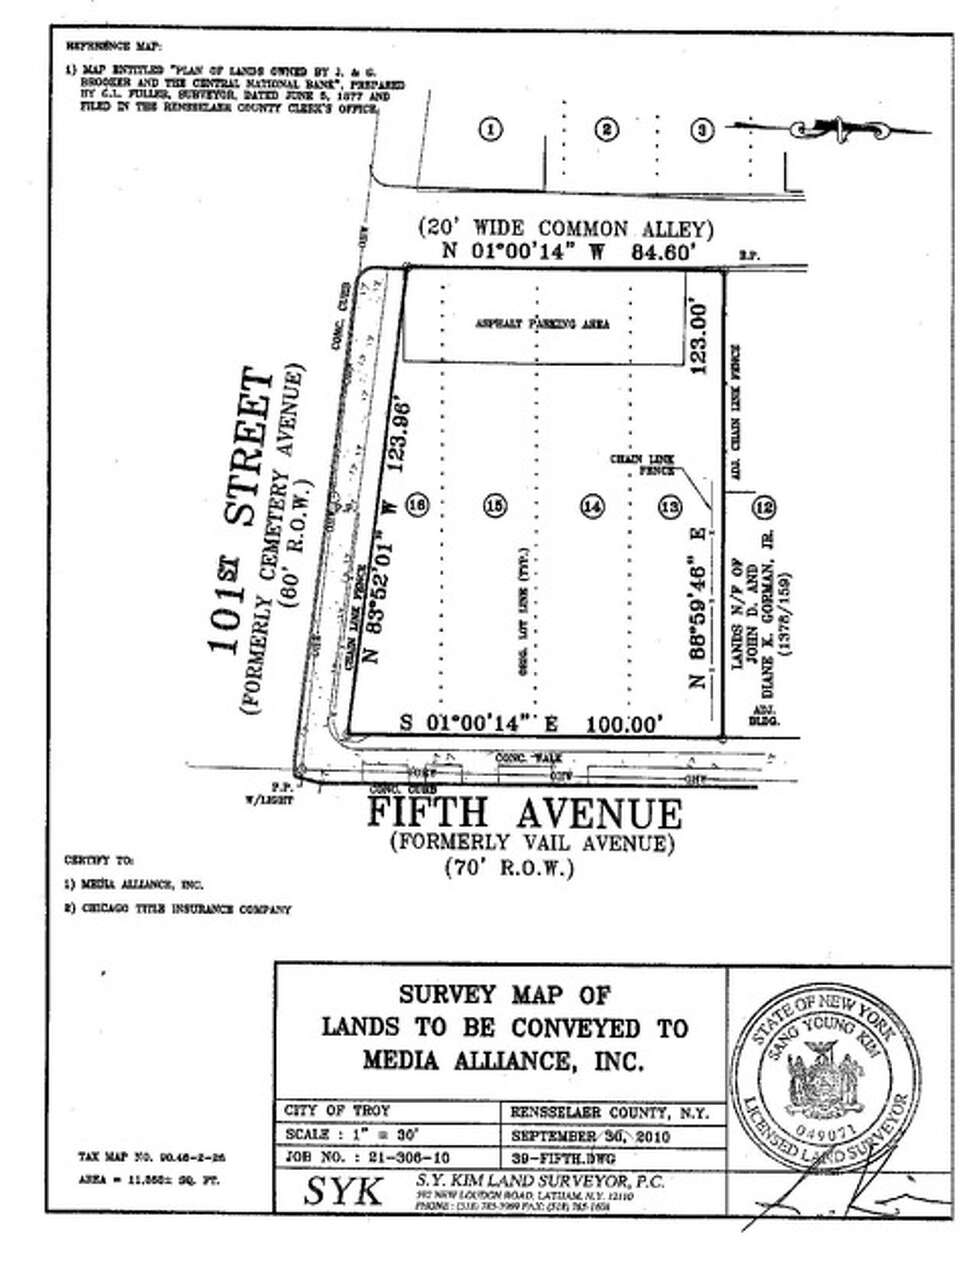 Survey map of area around Freedom Square, Troy. (Image provided by New York Media Alliance)